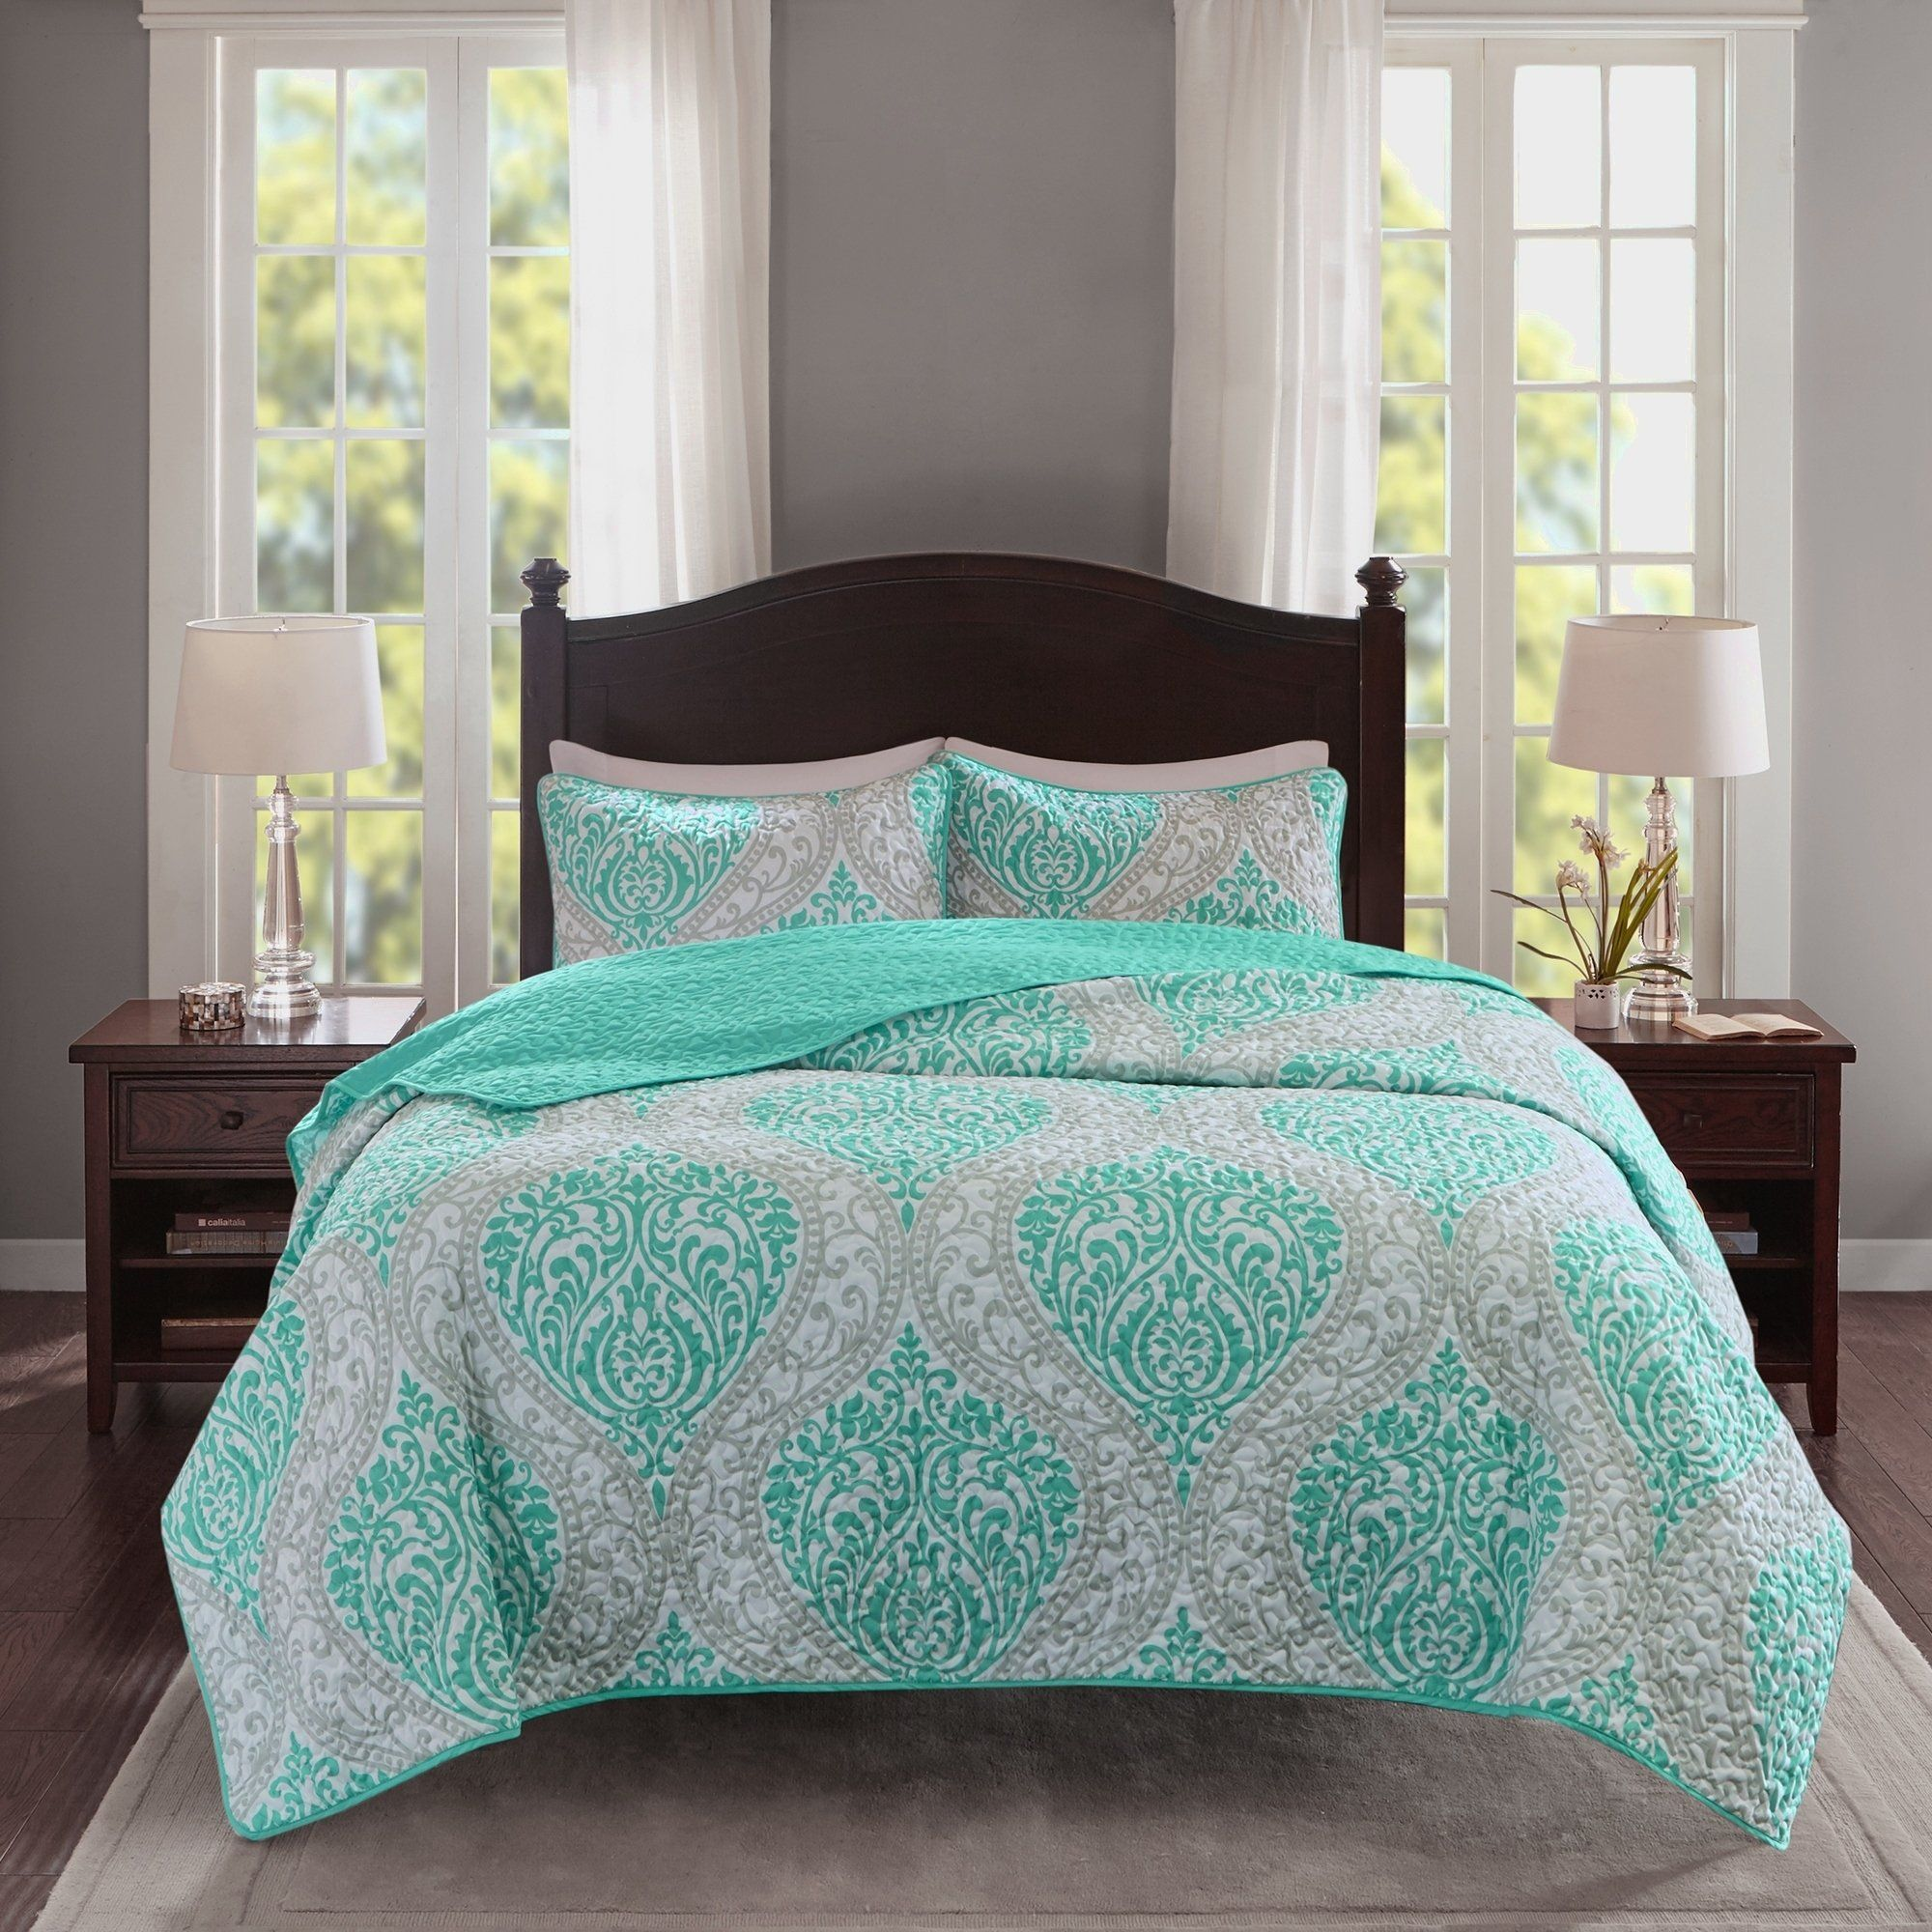 Coco Comforter Set Piece Black And White Printed Damask Pattern Full//Queen Size,